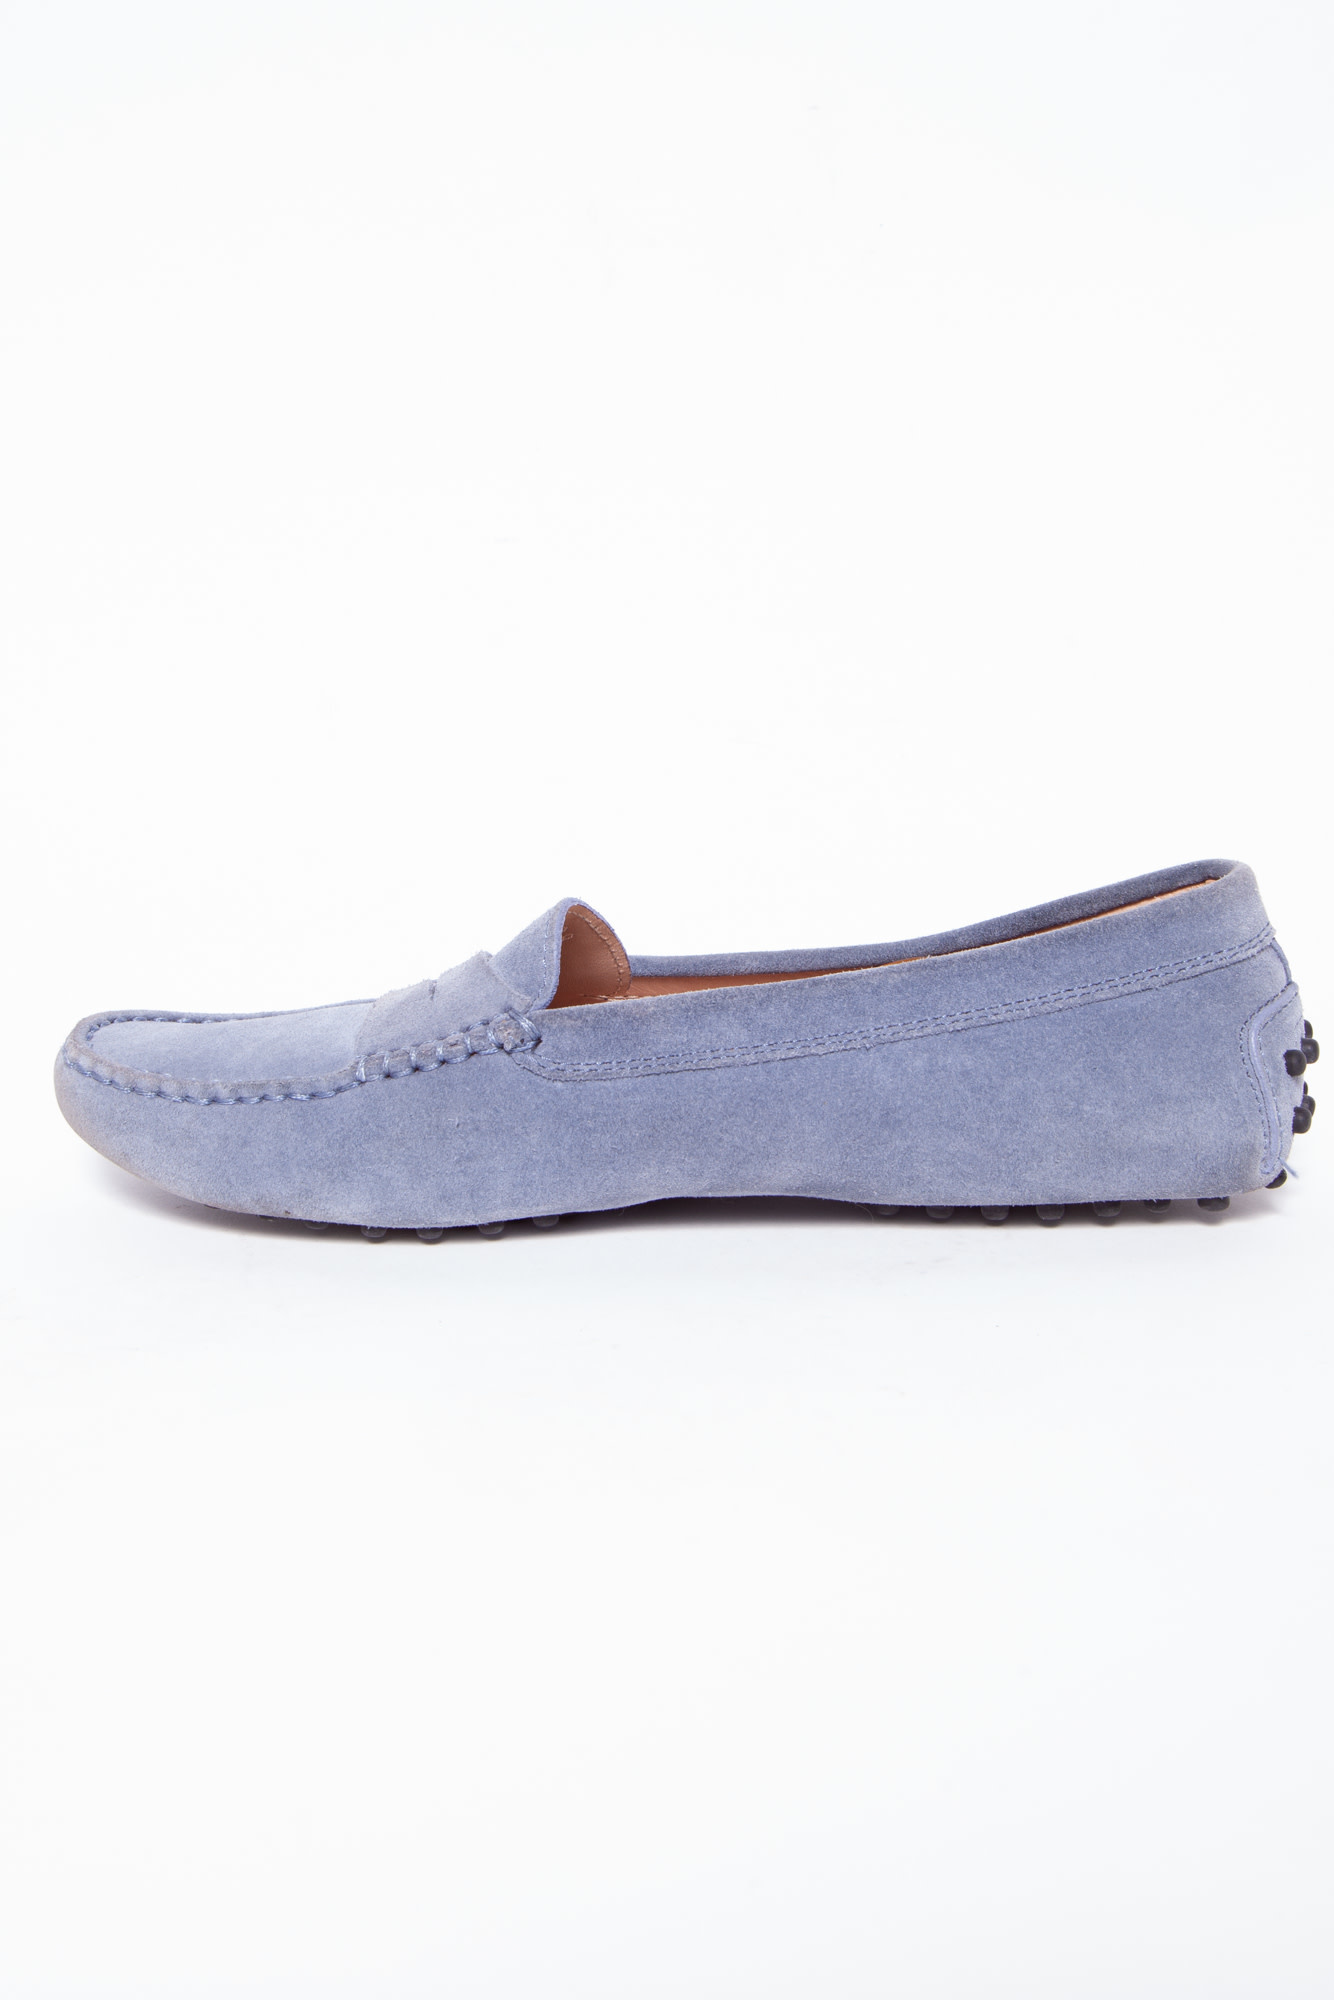 TOD'S BLUE-GRAY LOAFERS